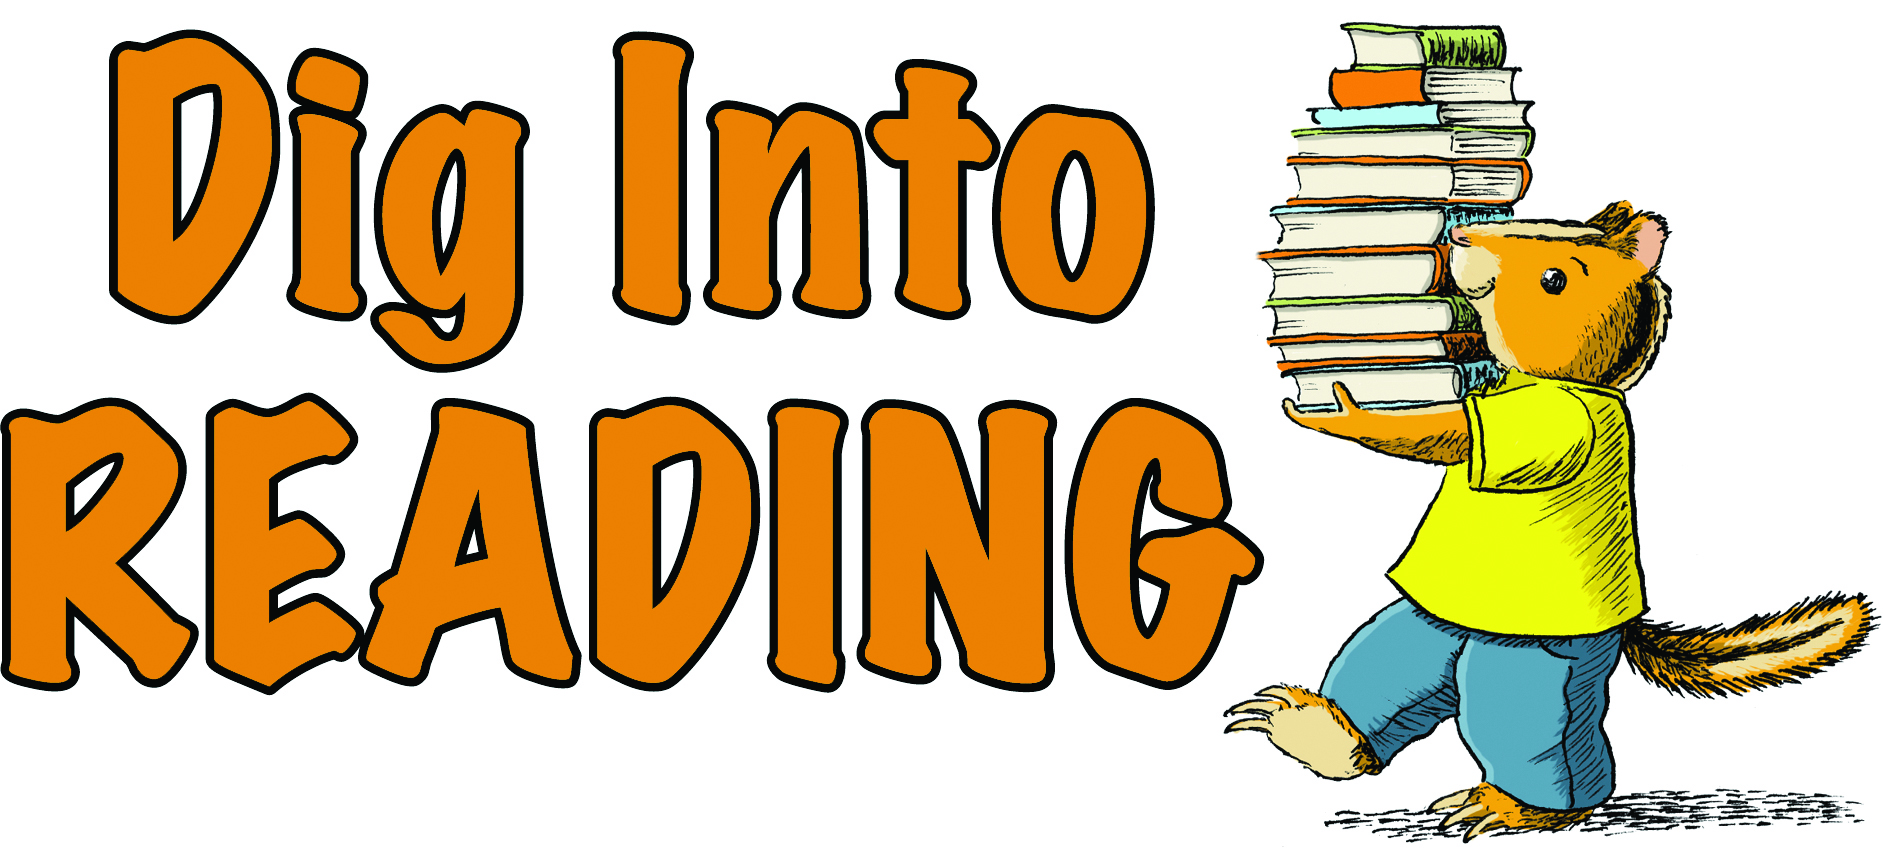 clipart of summer reading - photo #33